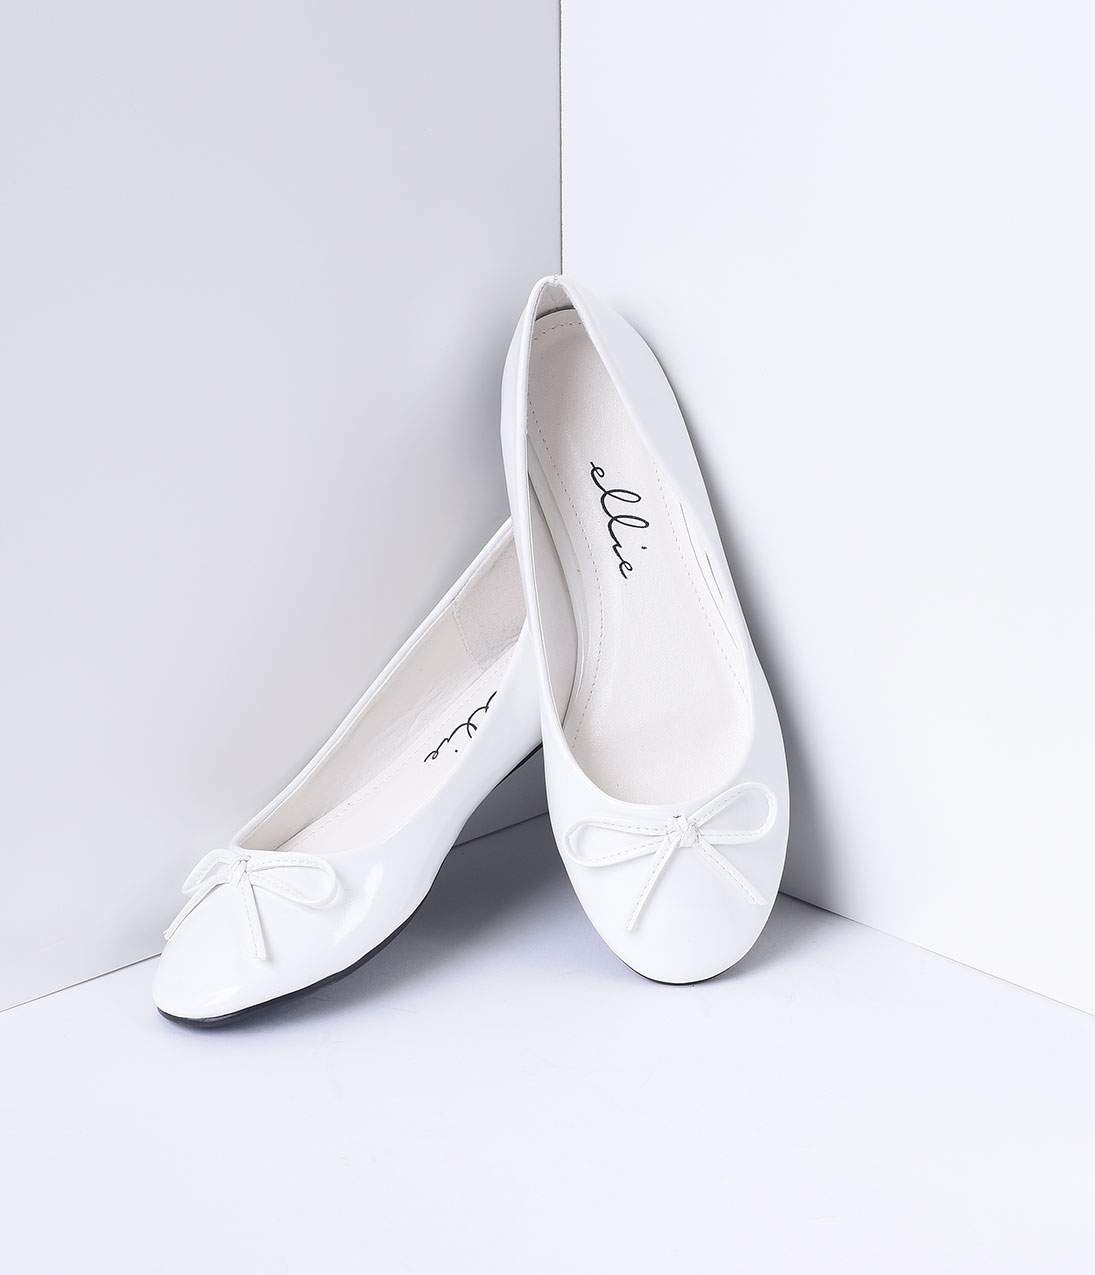 Vintage Style Shoes, Vintage Inspired Shoes White Bow Mila Flats $32.00 AT vintagedancer.com